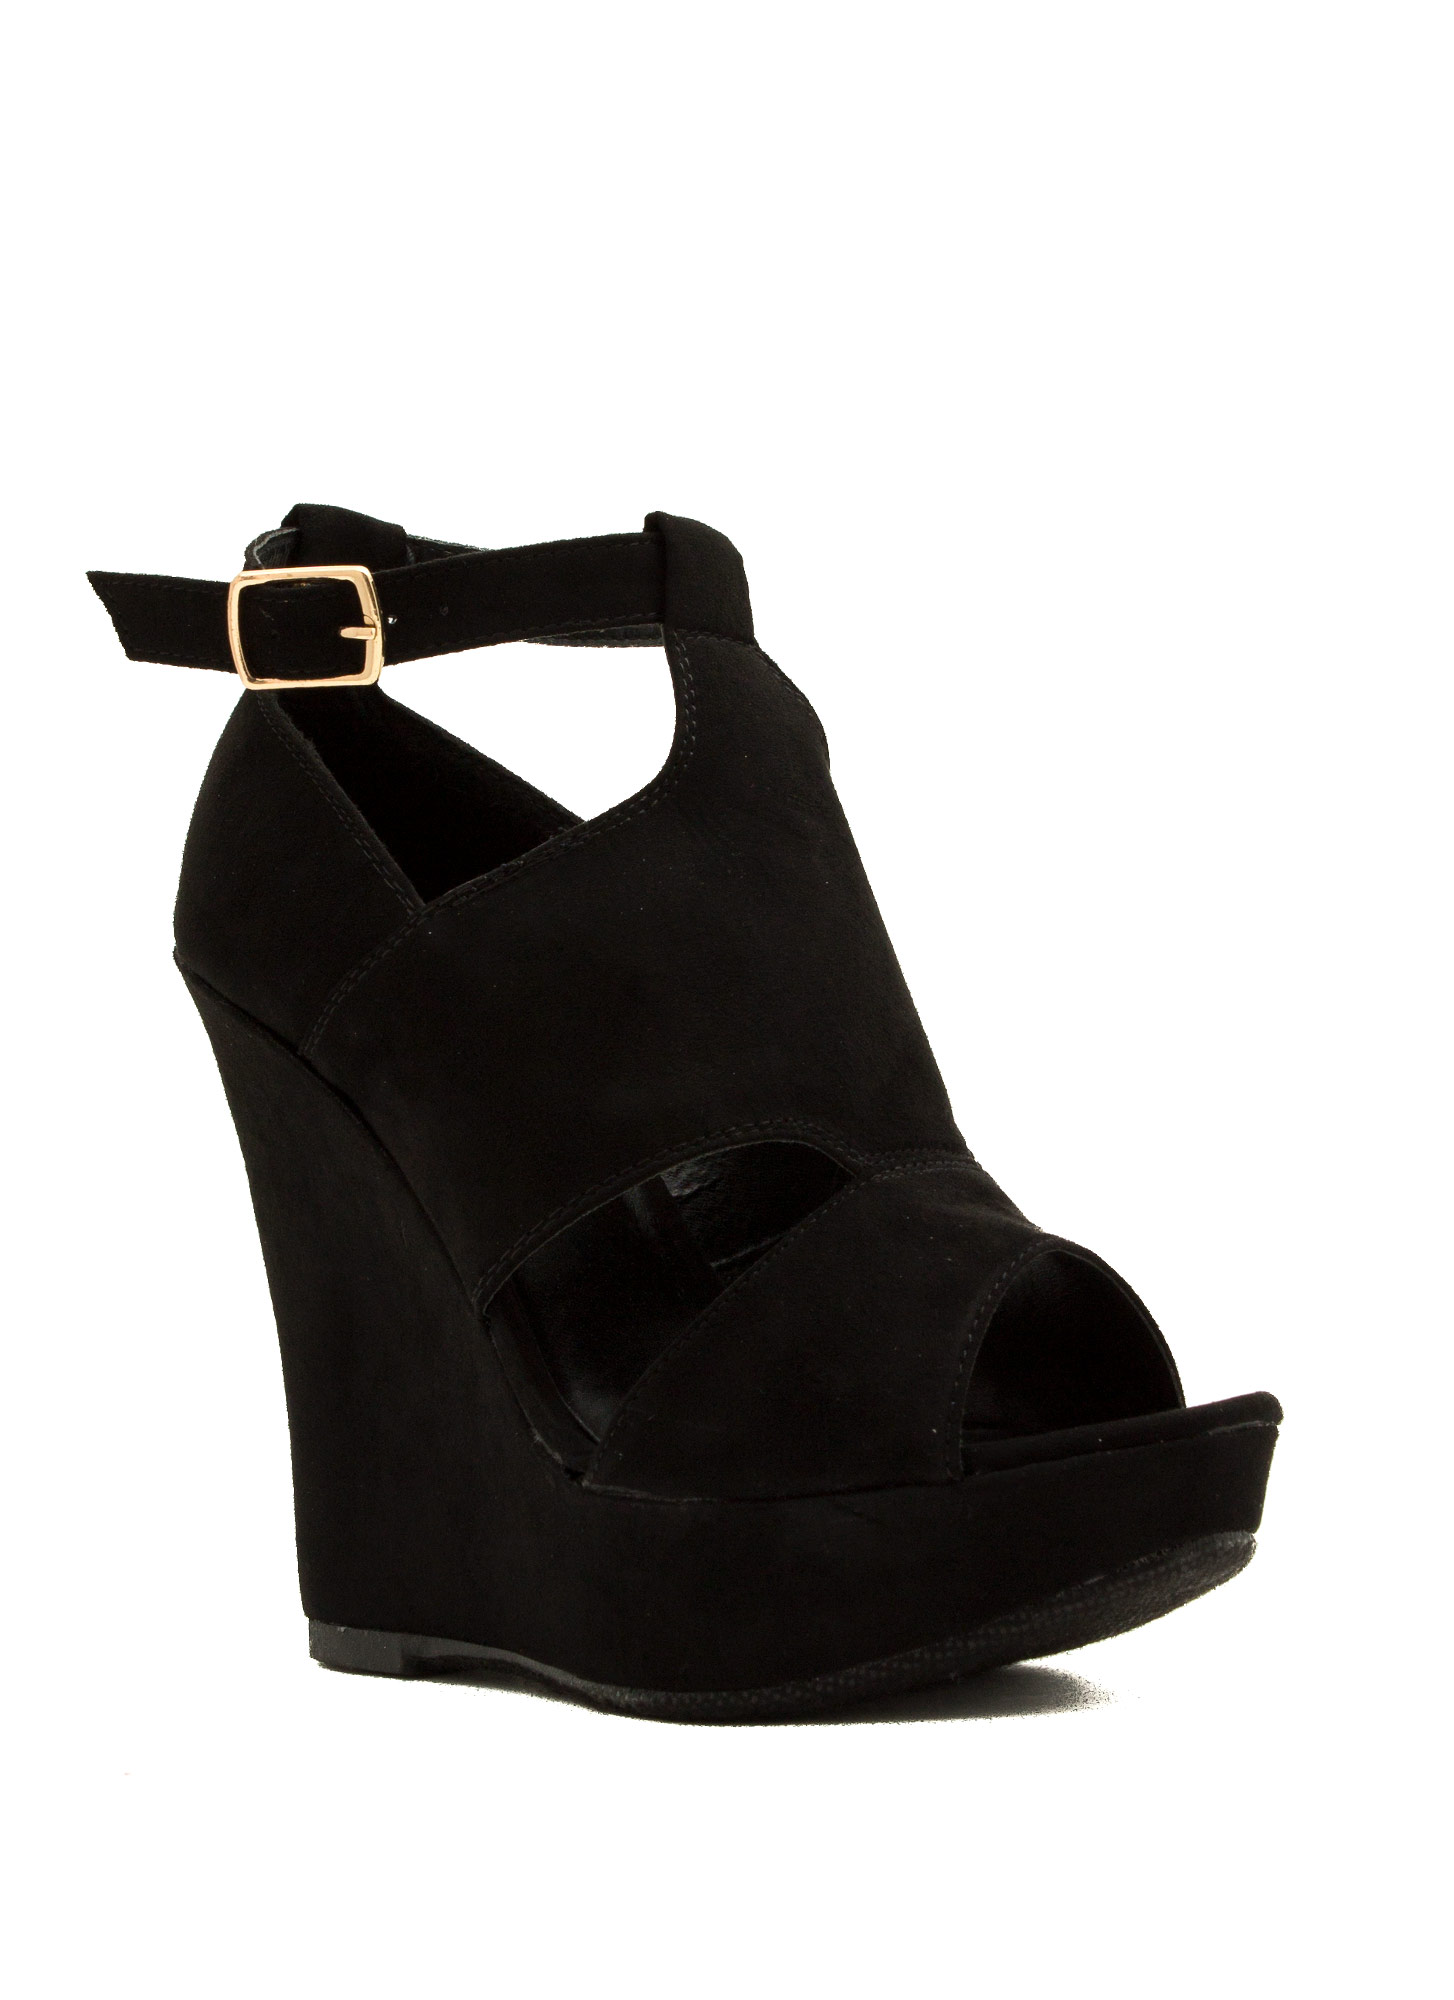 Cut-Out Paneled Peep-Toe Wedges BLACK